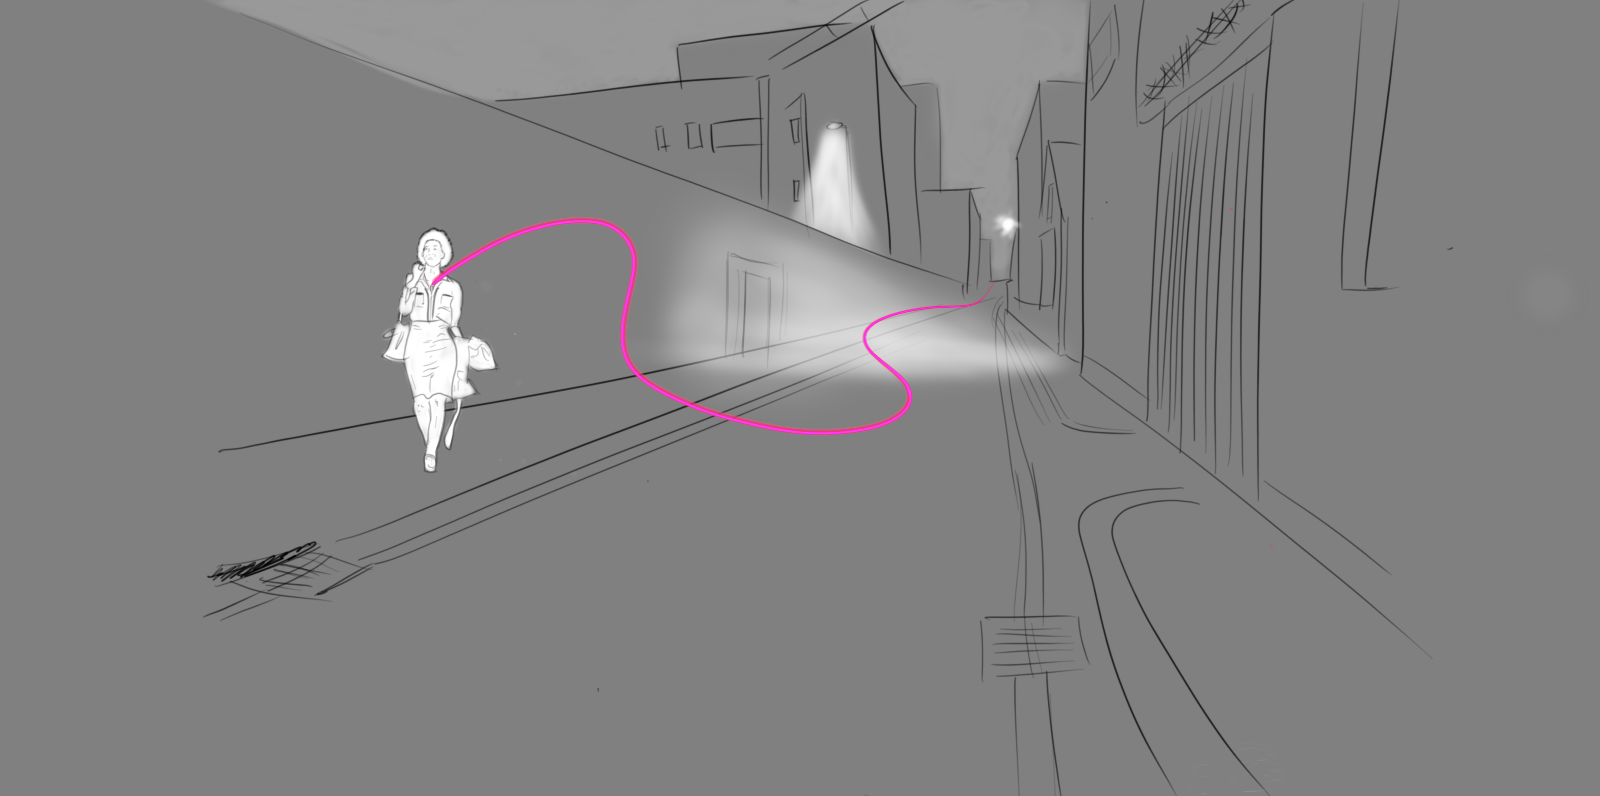 DIAGRAM 2 OF GPS LOCATION AND MESSAGE BEING SENT FROM DISCRETE WEARABLE JEWELLERY DEVICE